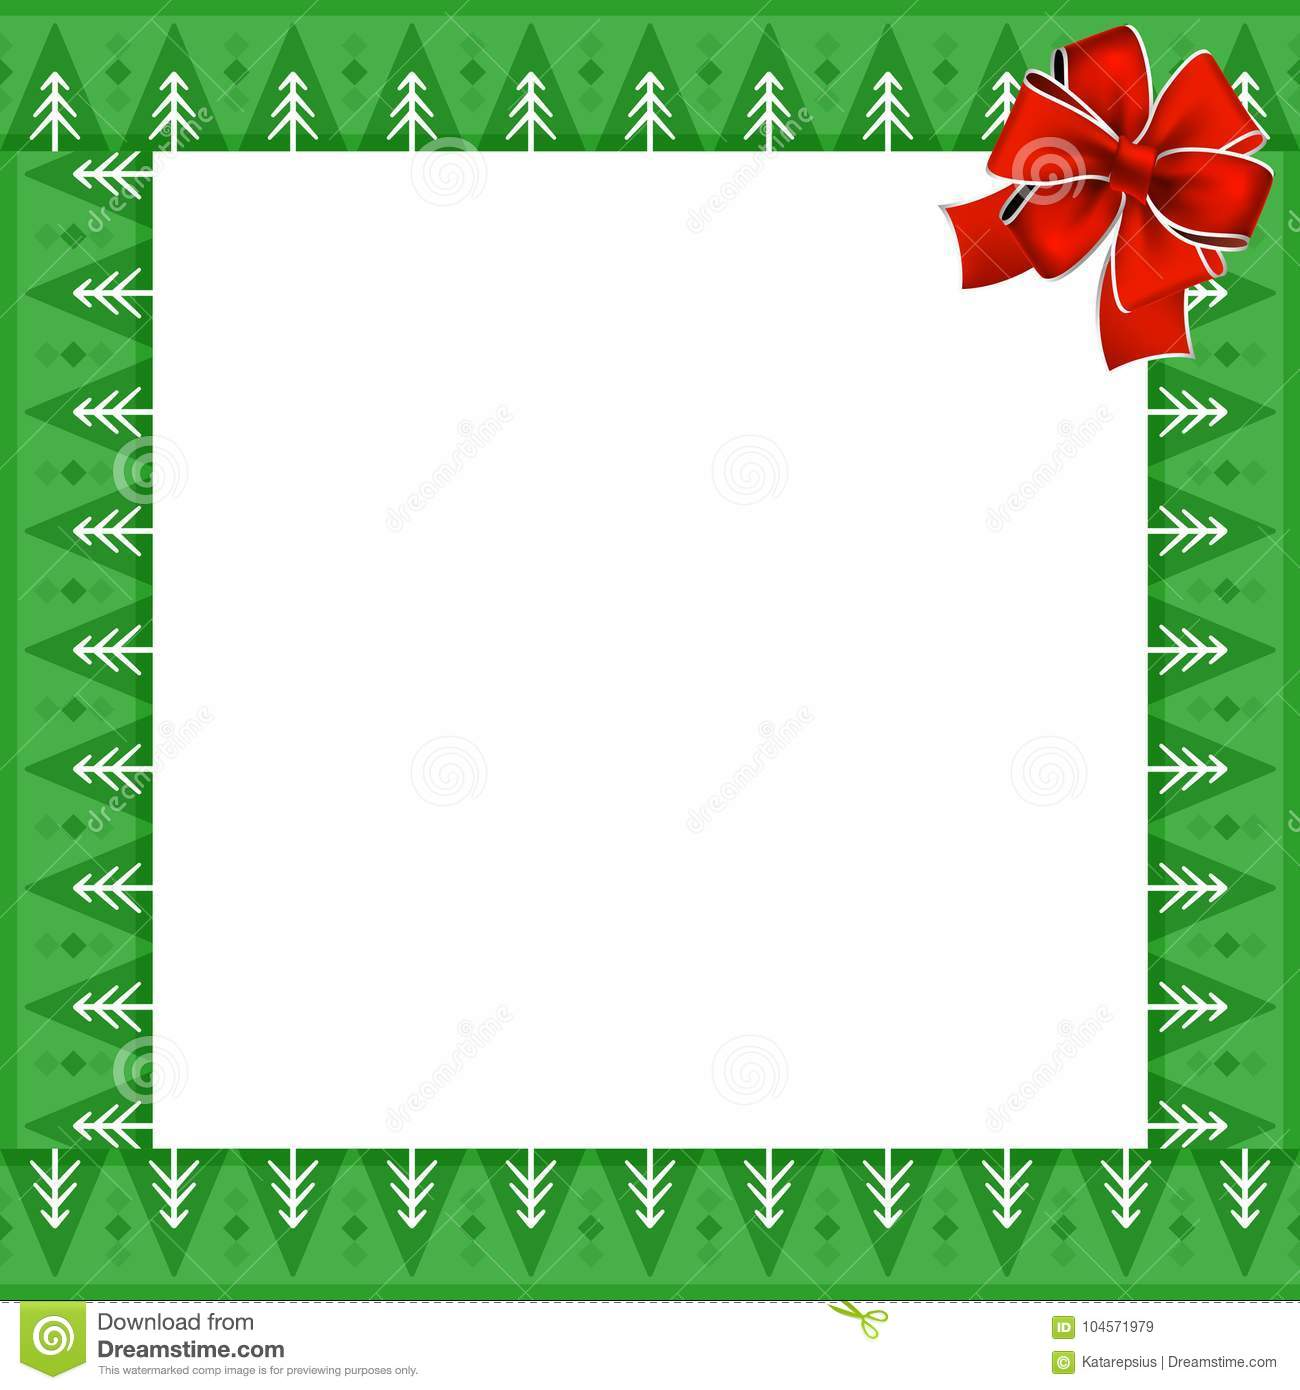 Frame with Christmas trees pattern on green background and festive red bow